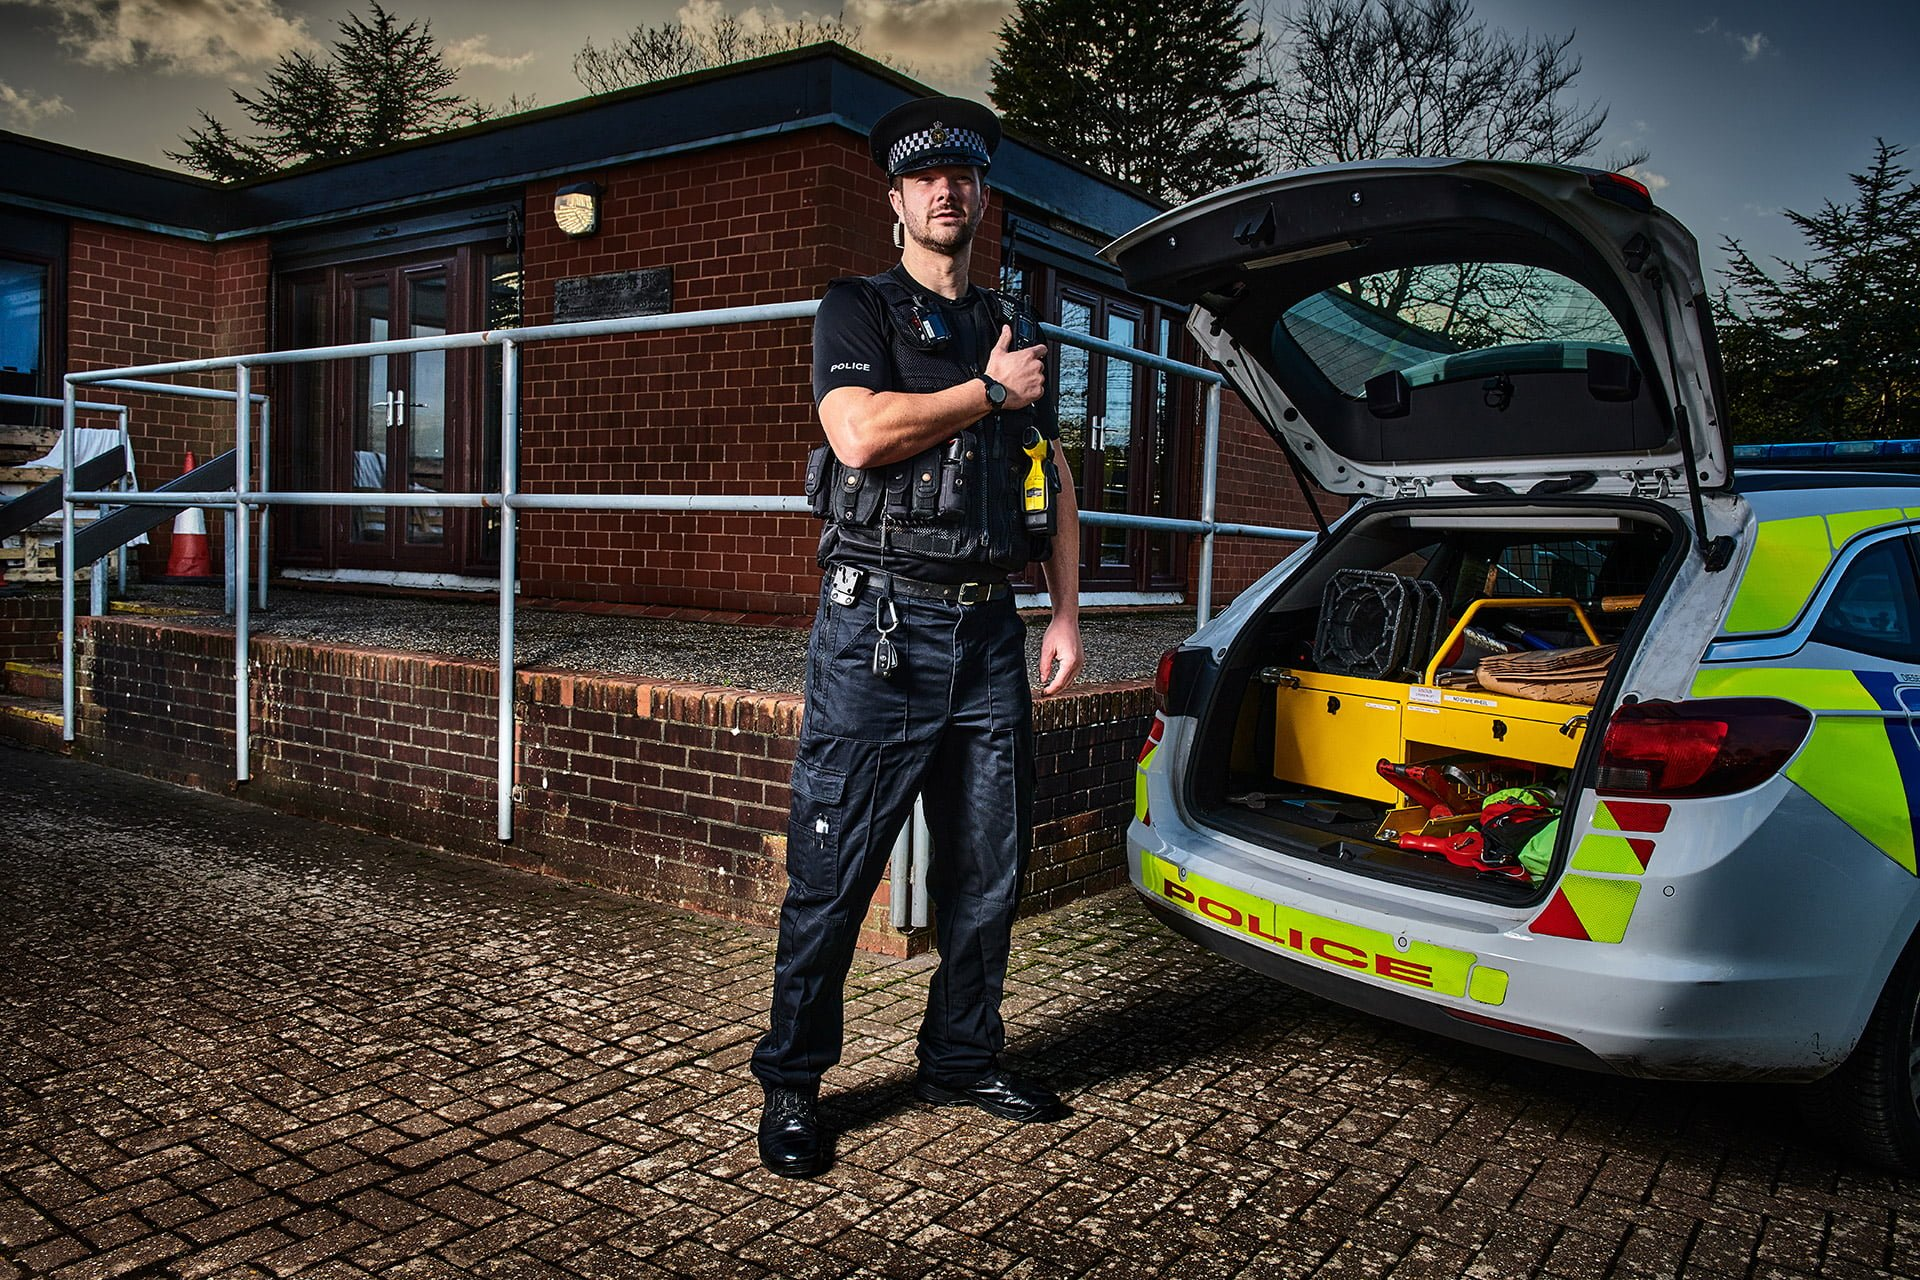 police_photographers_UK